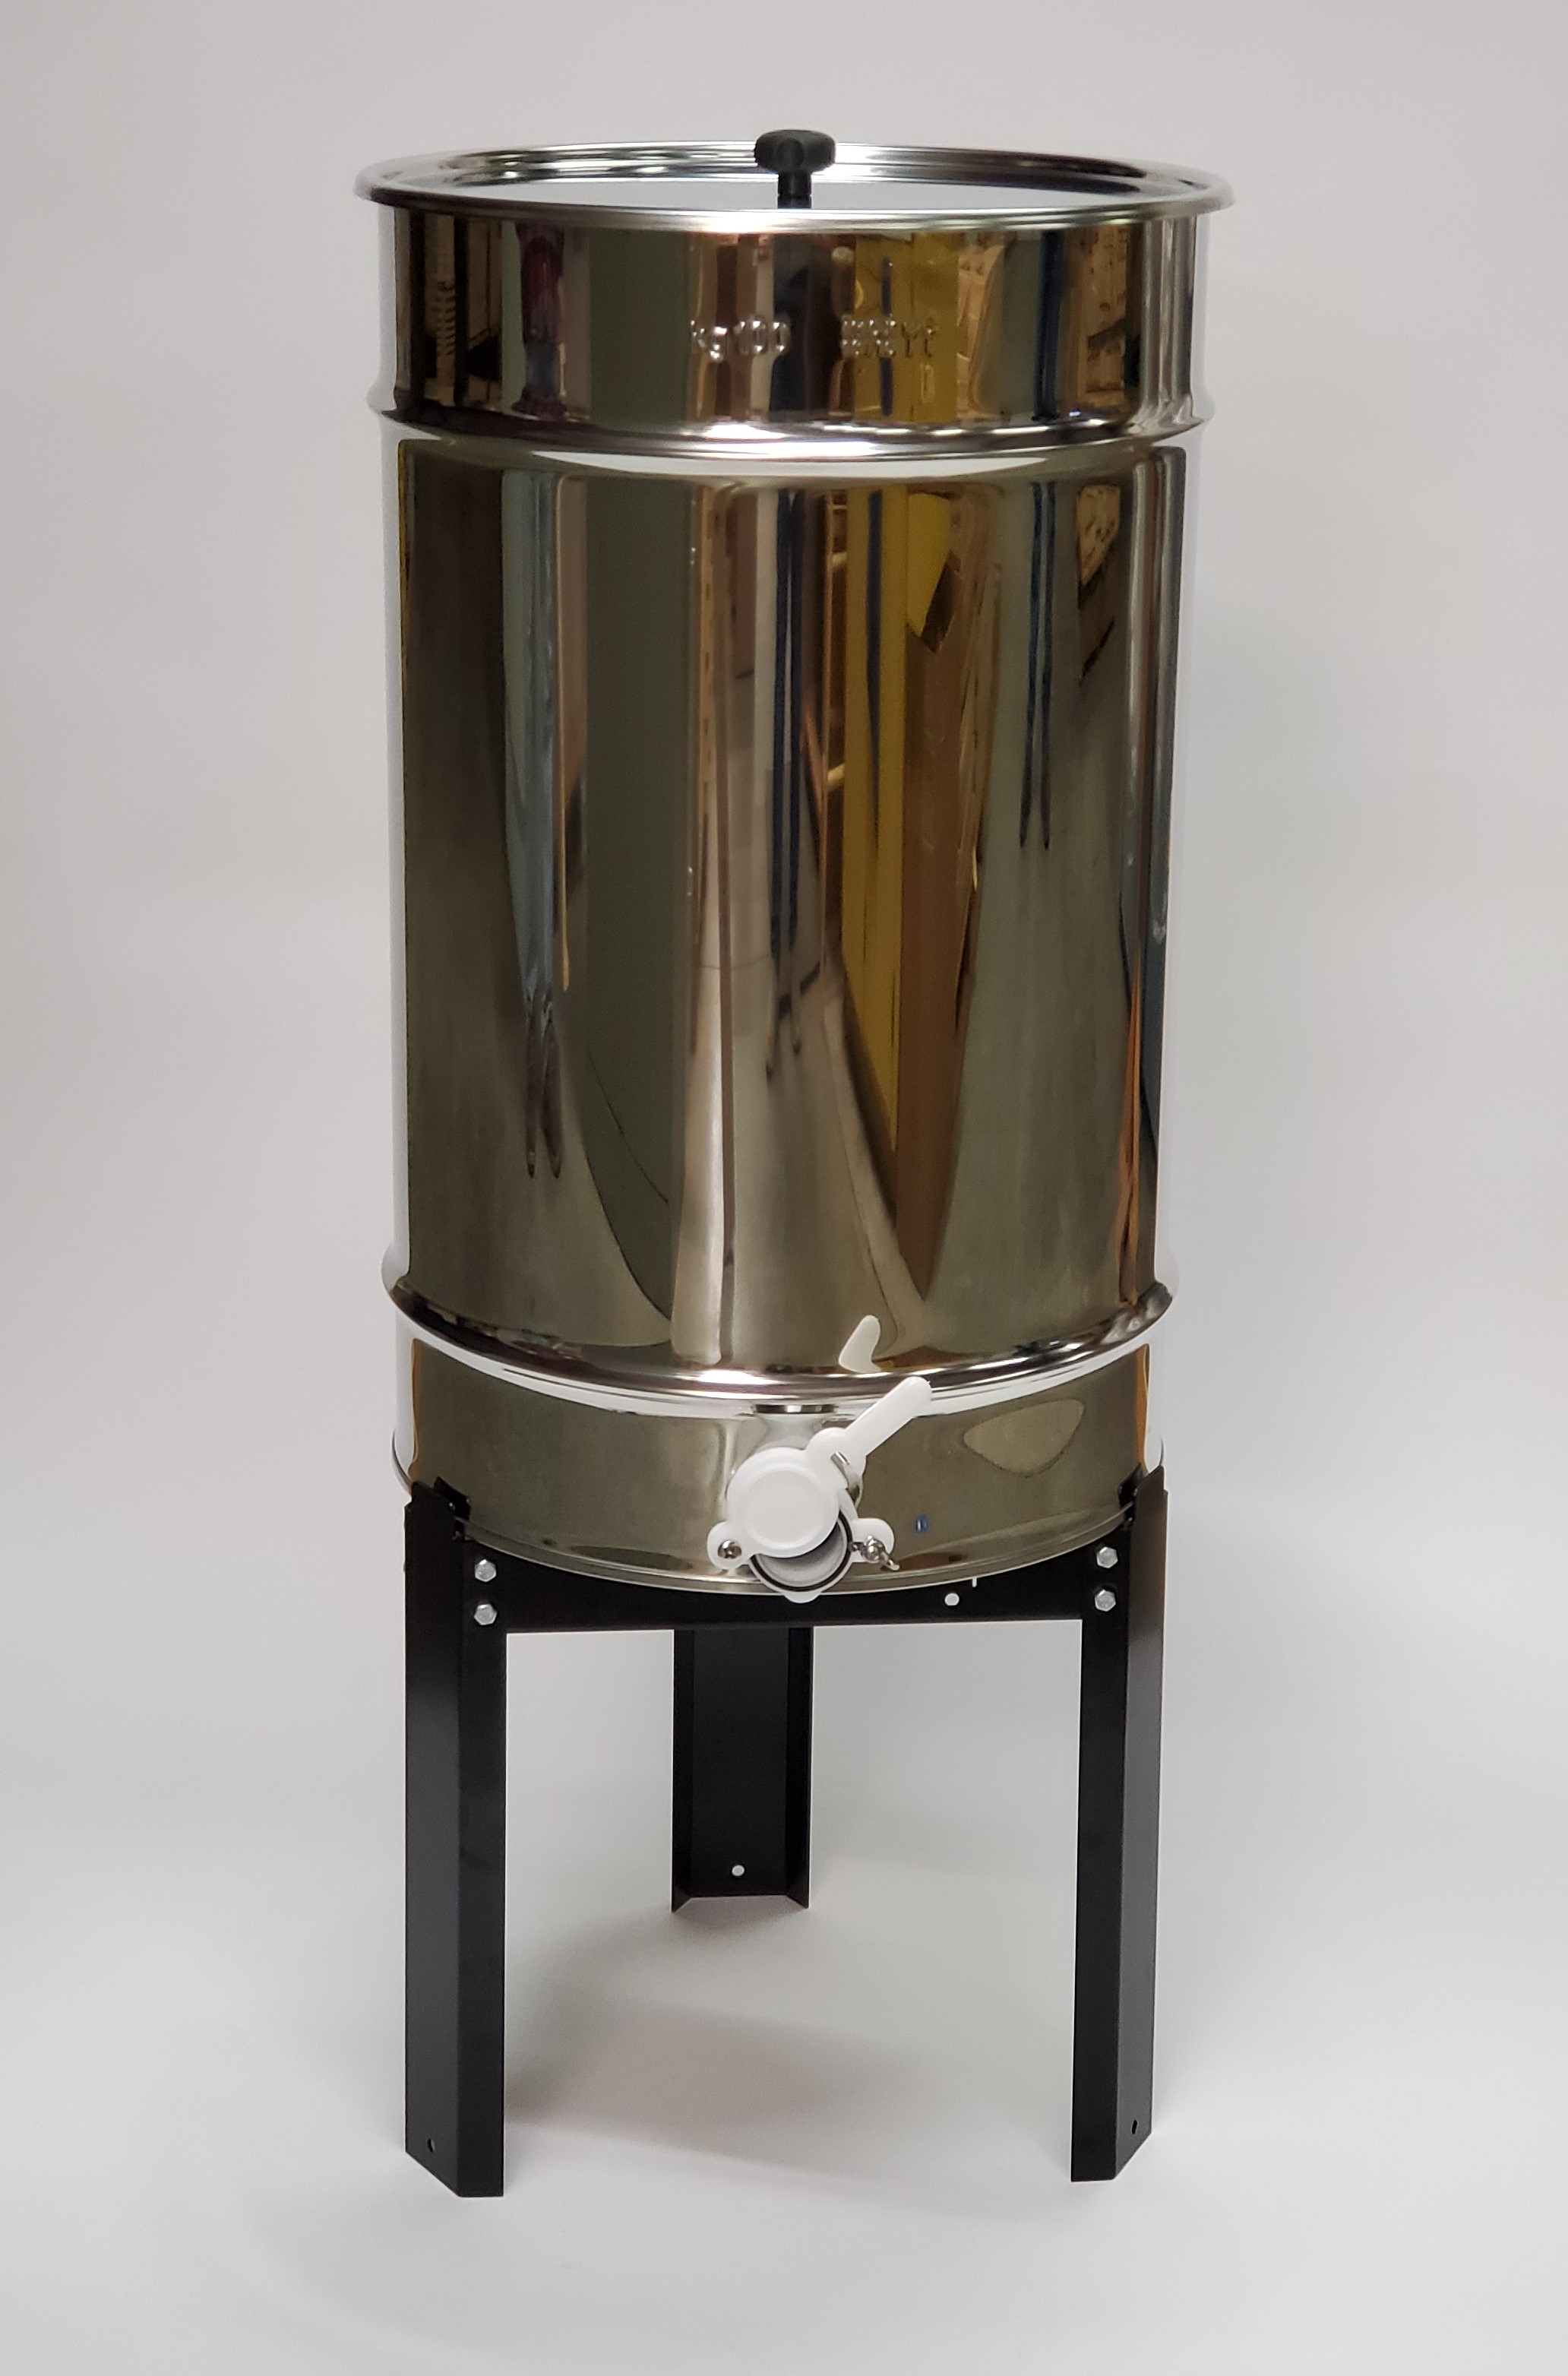 220 Lb Honey Tank with Stand